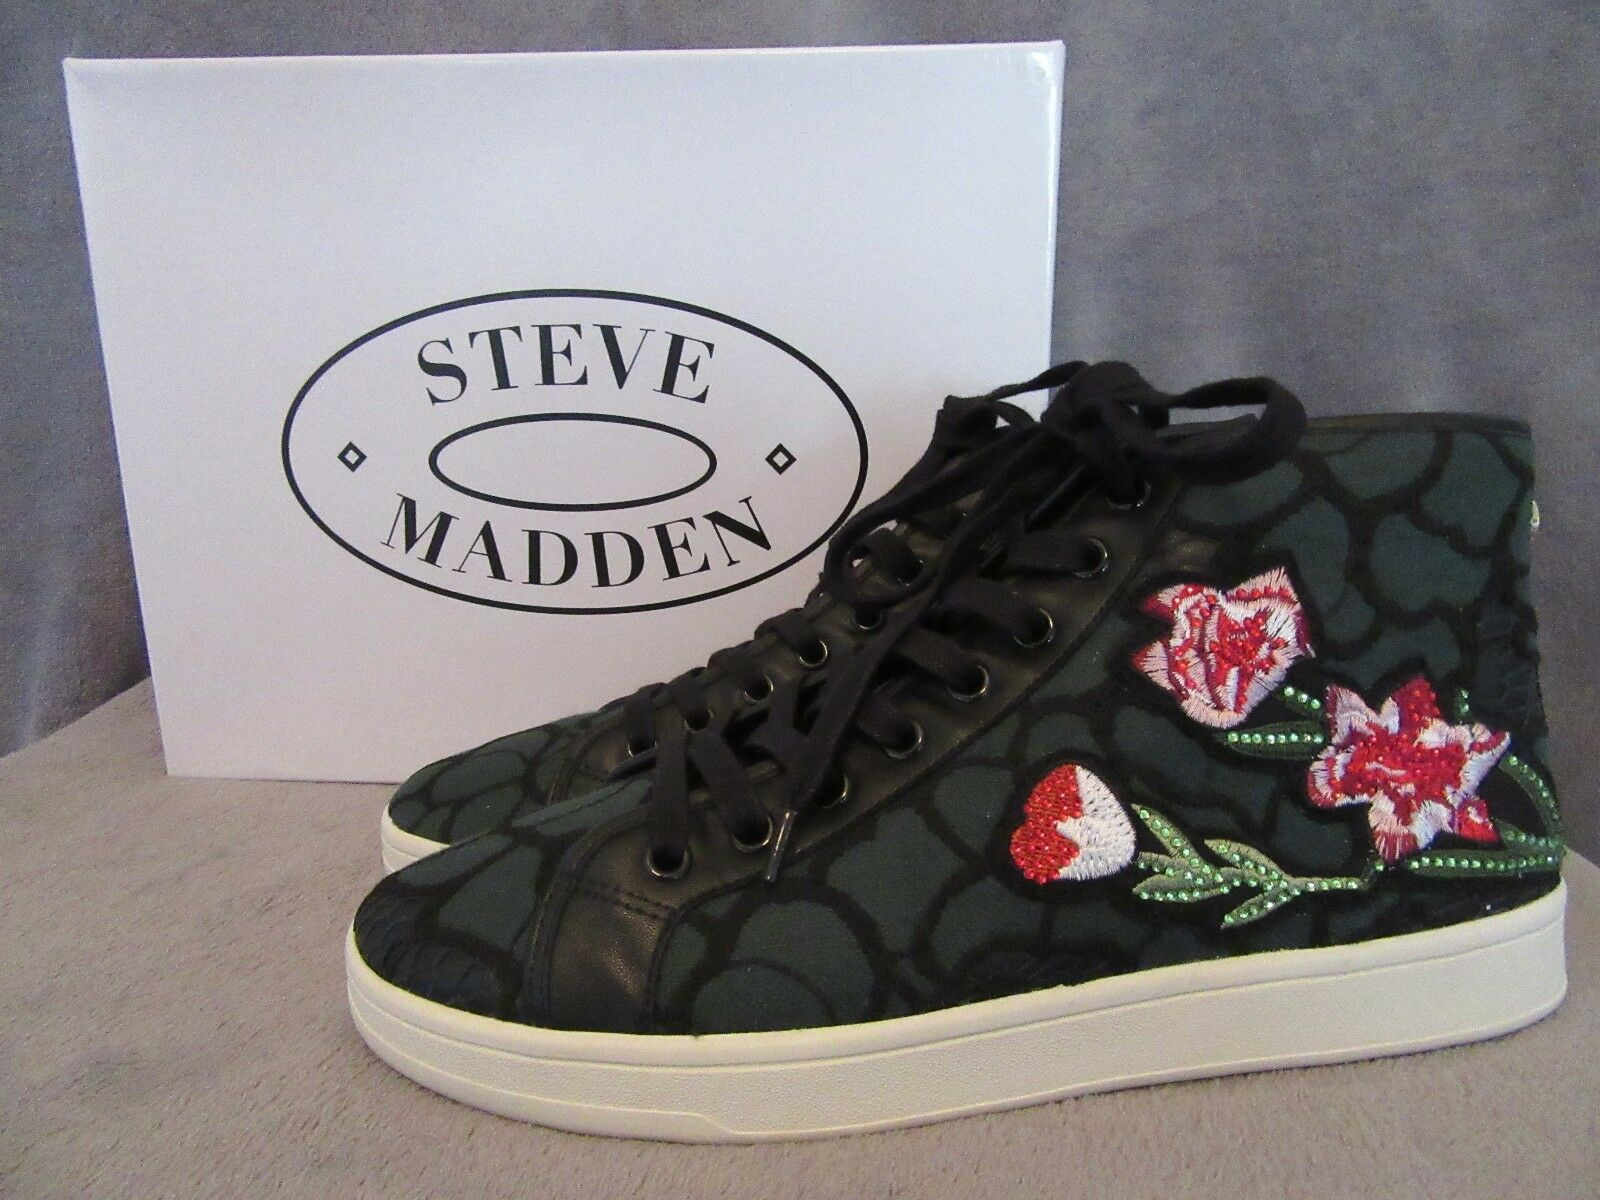 STEVE MADDEN Allie Green Floral Embroidery High Top Sneaker shoes US 8.5 M NWB